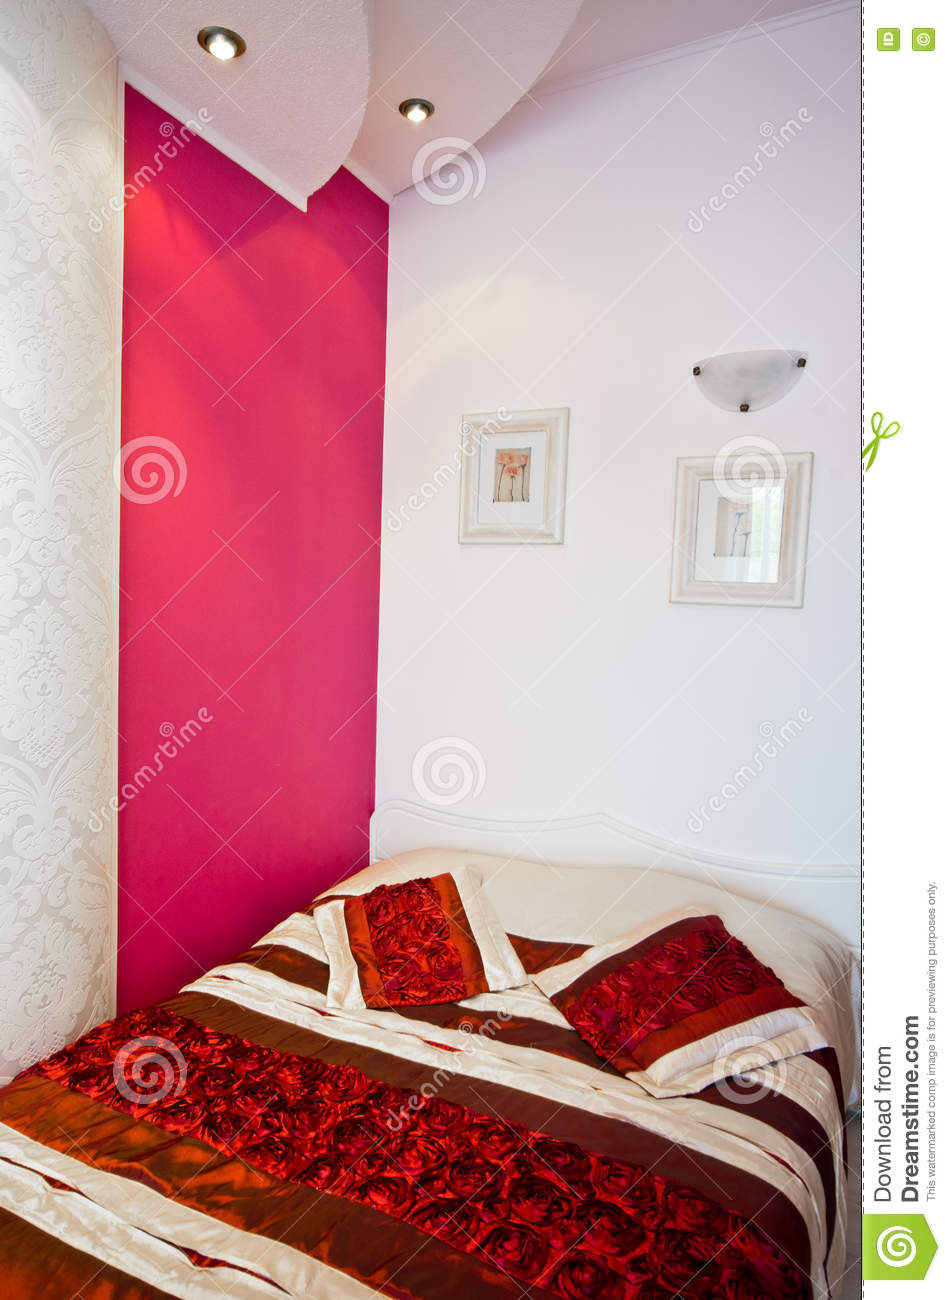 Bed In Room With Red Accent Wall Stock Photo Image Of Home